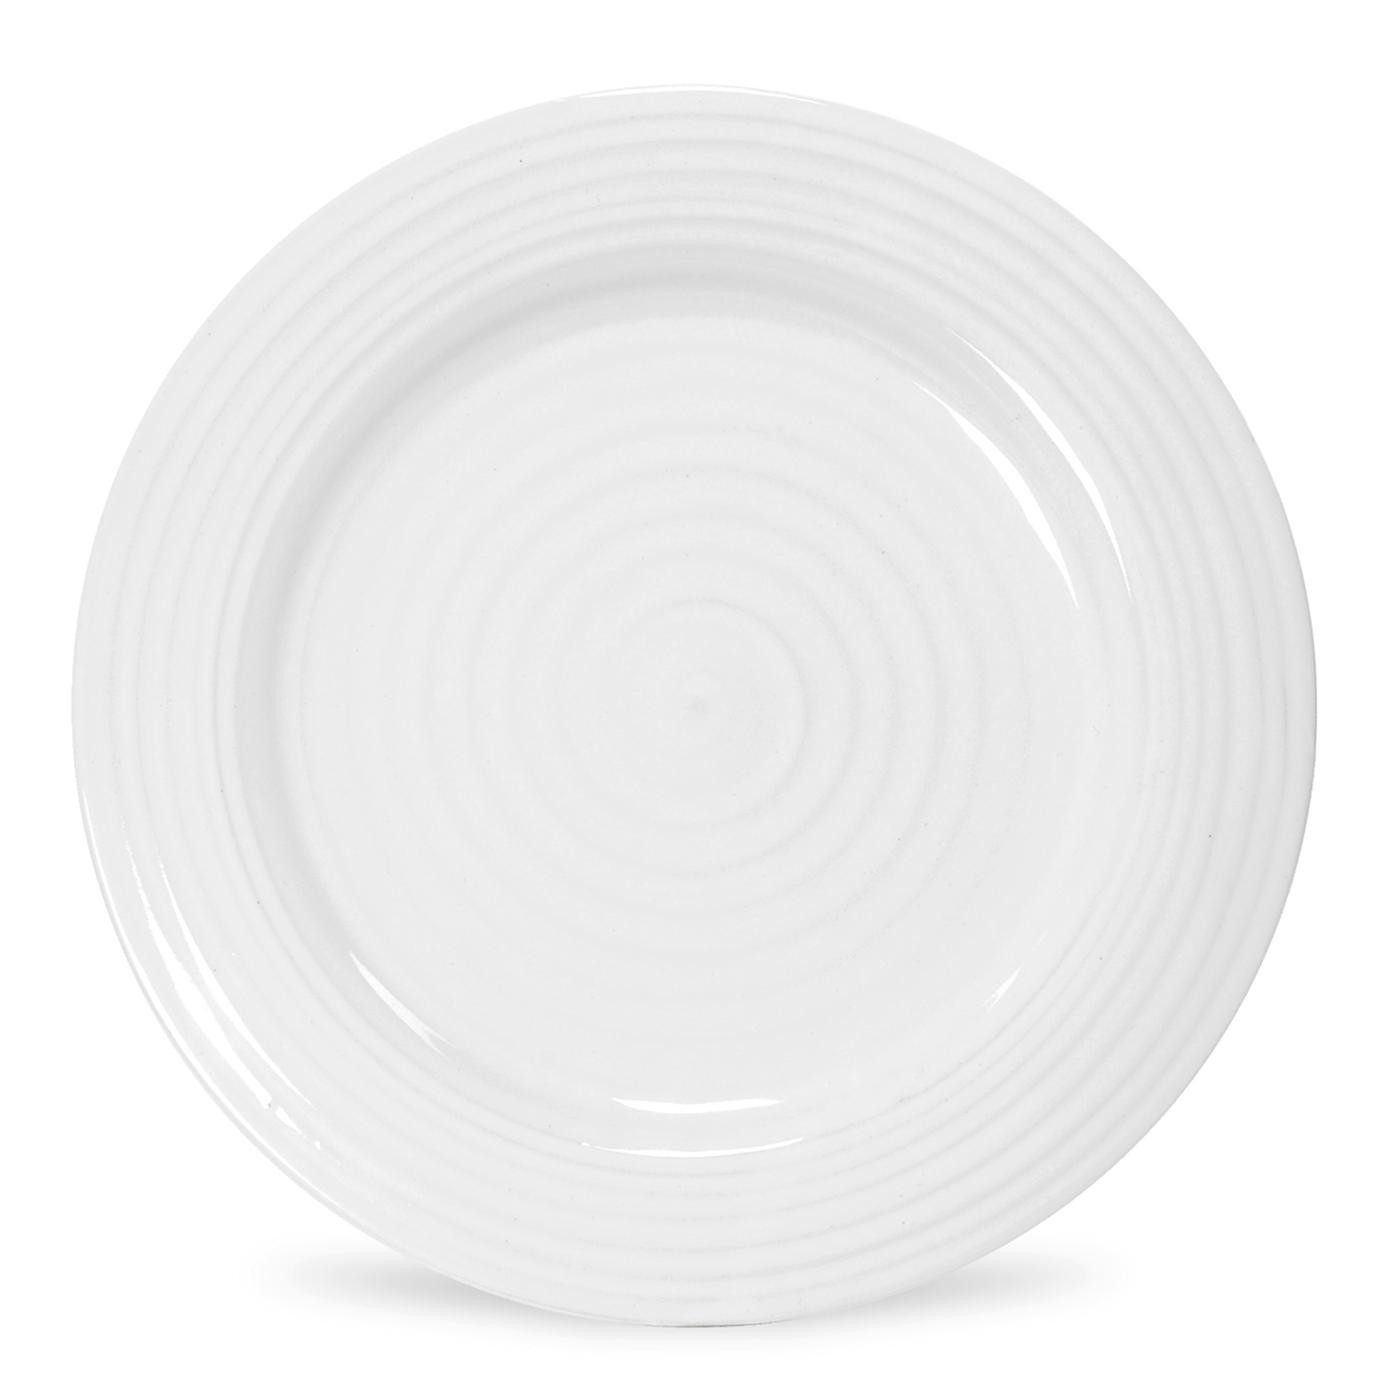 Plate HD PNG Transparent Plate HD.PNG Images..